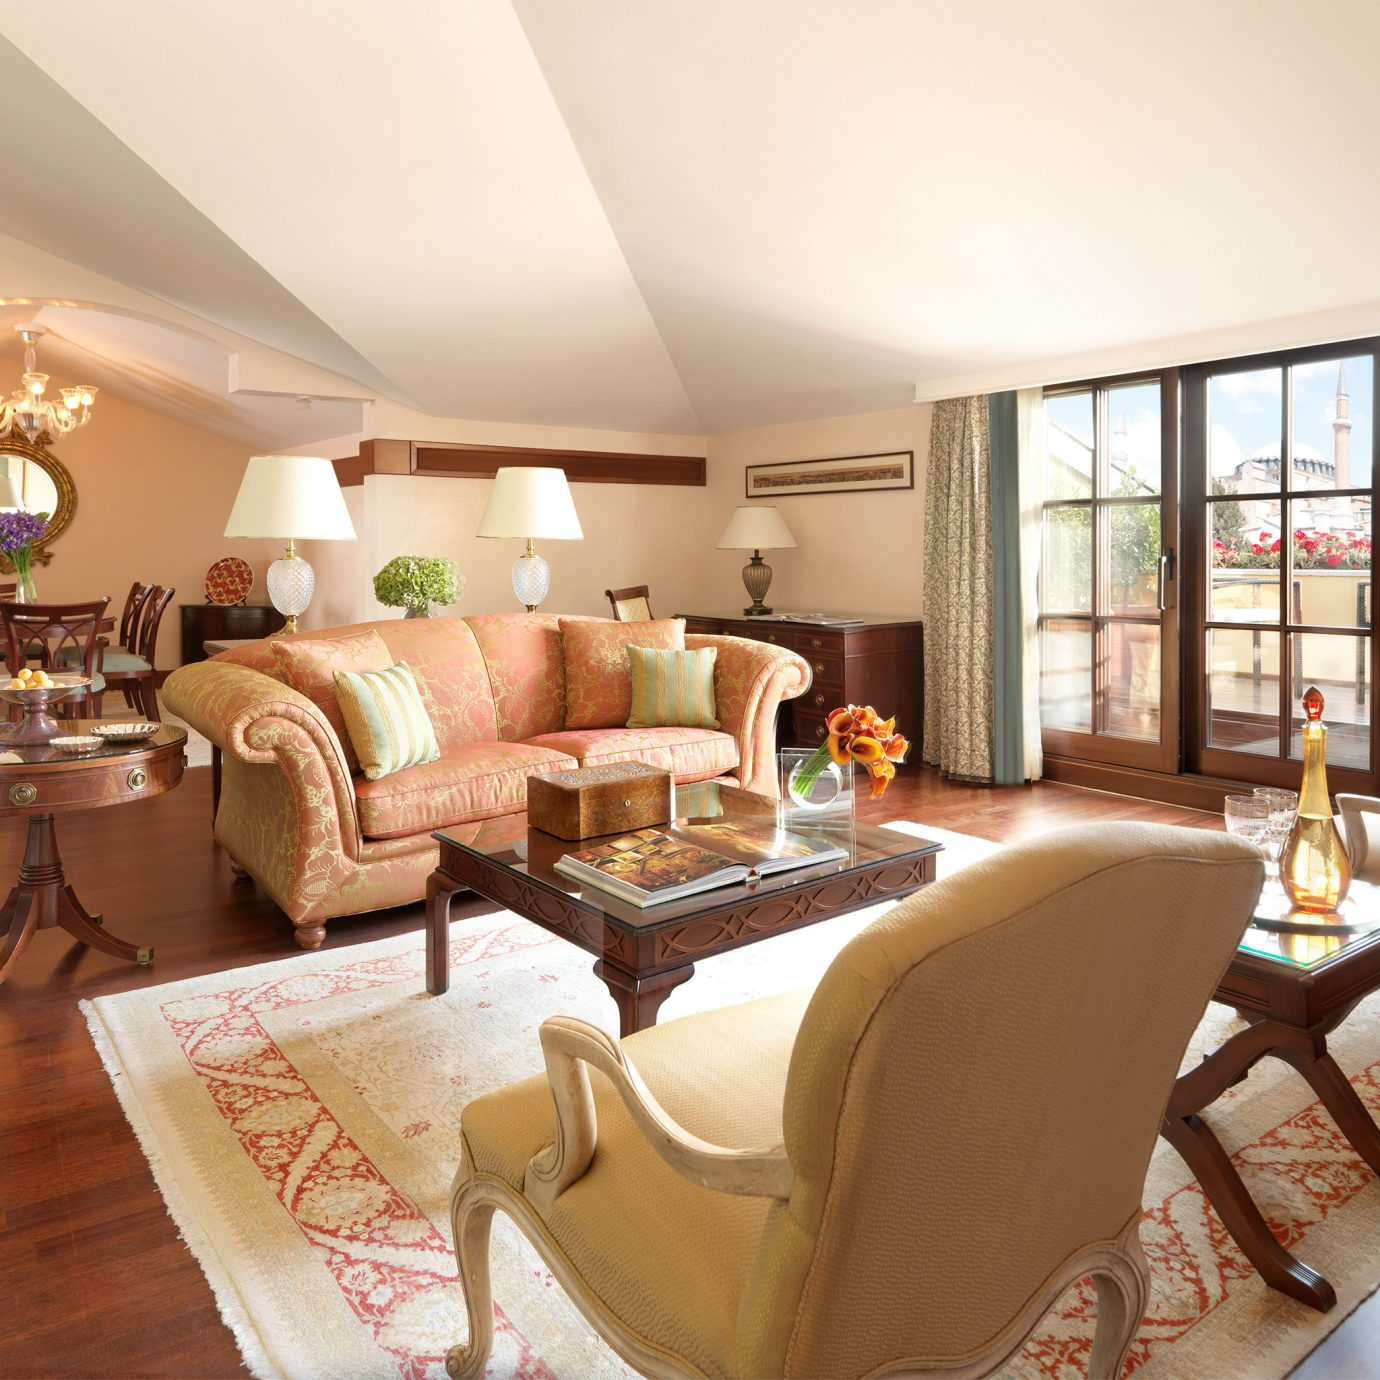 Elegant Historic Lounge Luxury living room property home Suite condominium Villa nice flat